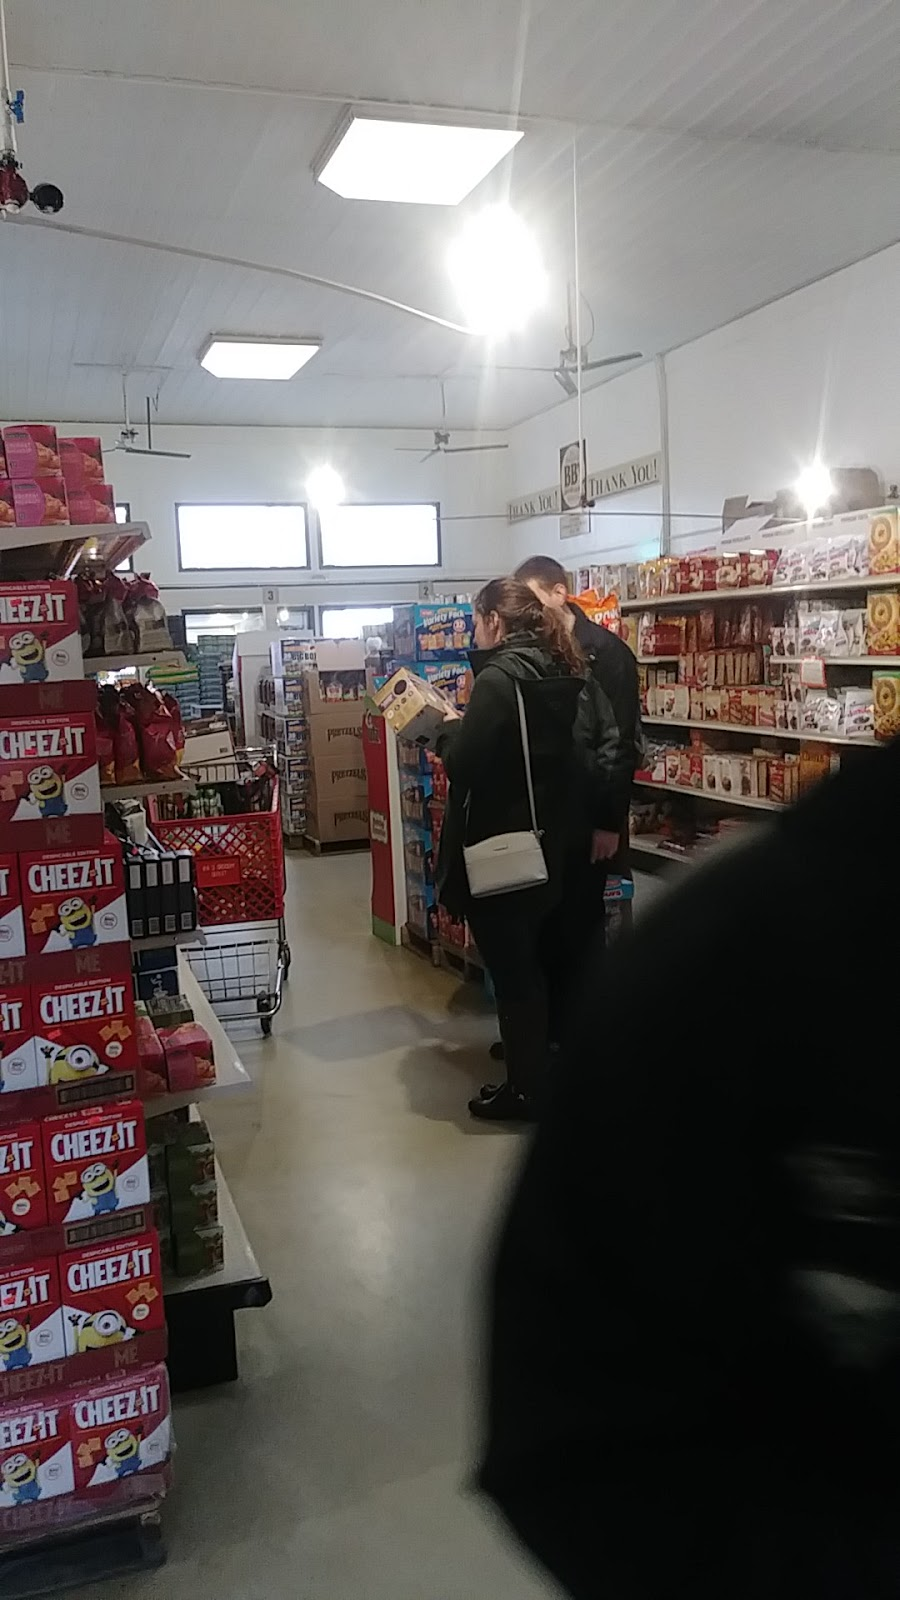 BBs Grocery Outlet - store  | Photo 8 of 10 | Address: 430 N Market St, Myerstown, PA 17067, USA | Phone: (717) 786-3210